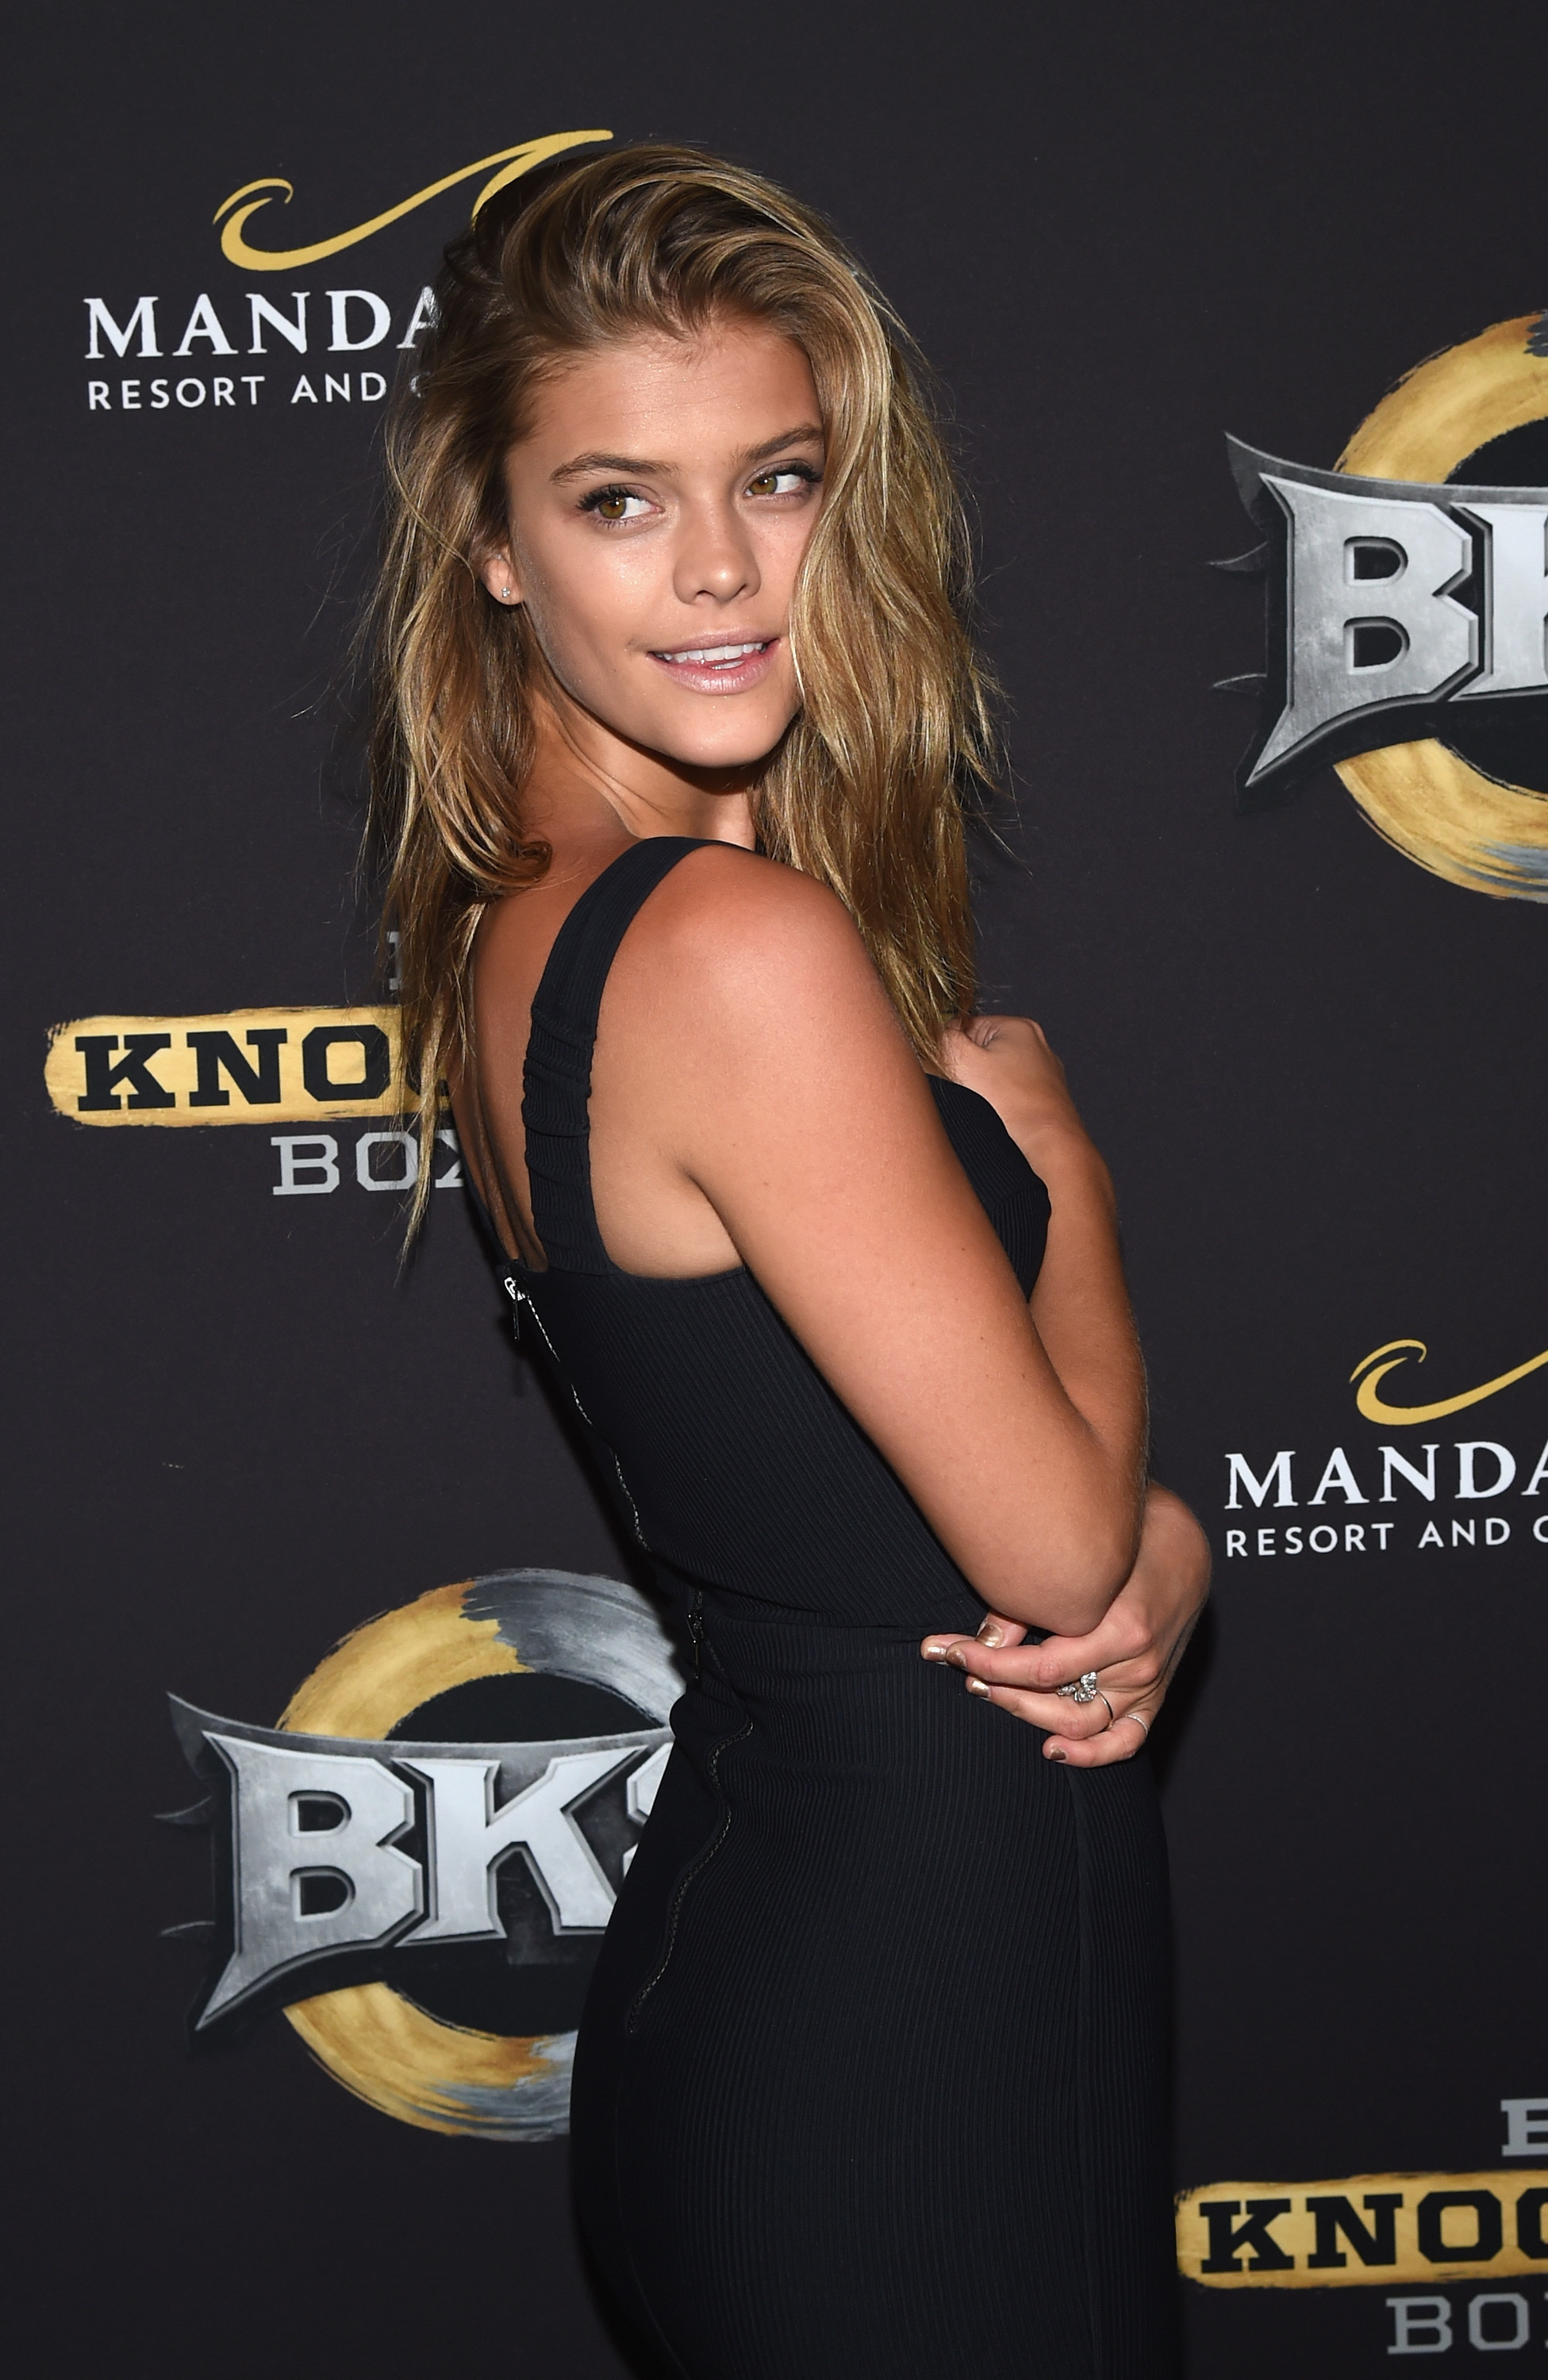 nina-agdal-big-knockout-boxing-inaugural-event-las-vegas-august-16-2014-01